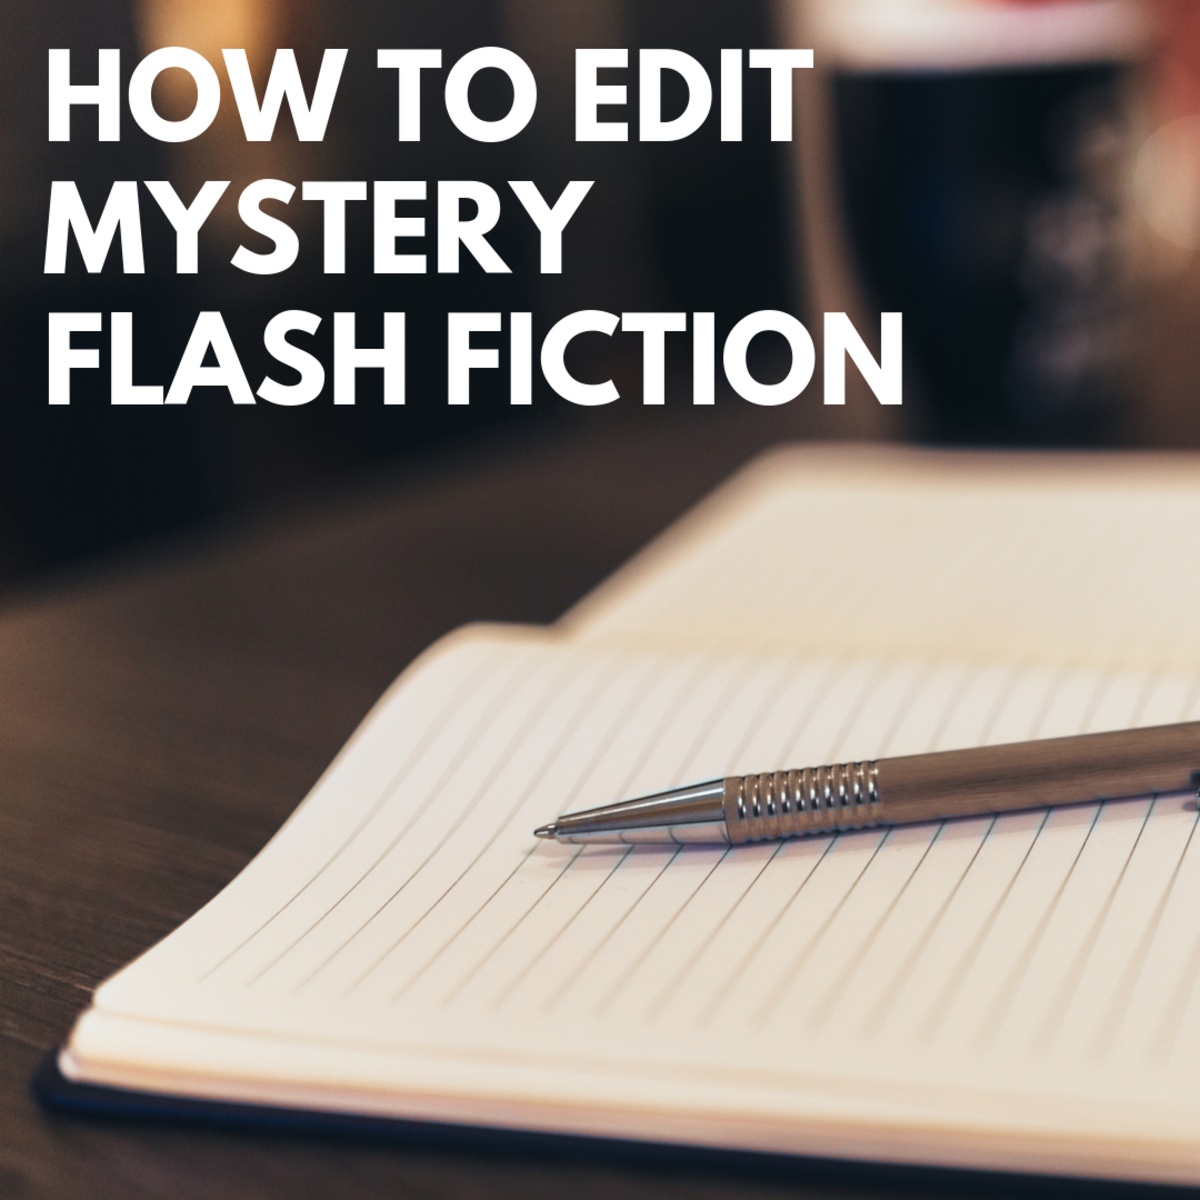 5 Steps for Editing Mystery Flash Fiction Stories